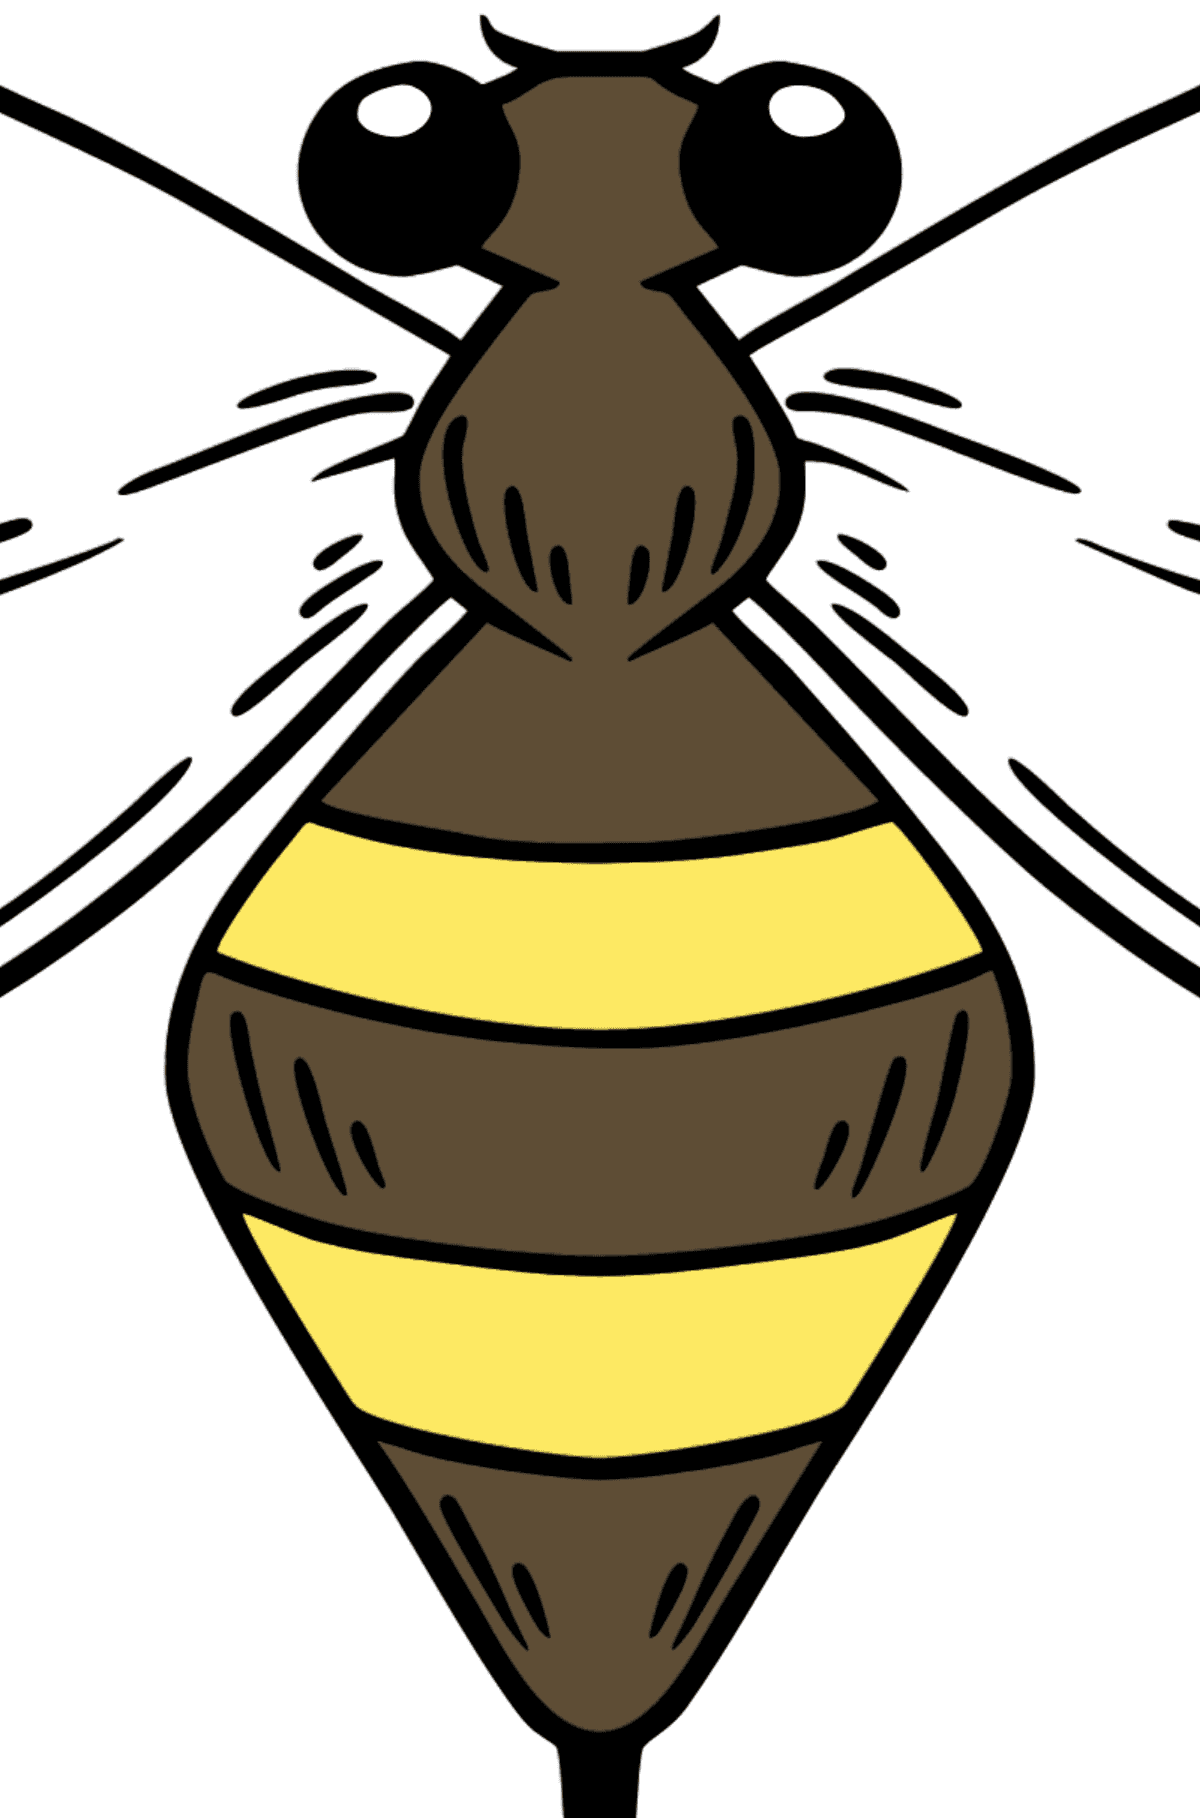 Wasp coloring page - Coloring by Geometric Shapes for Kids